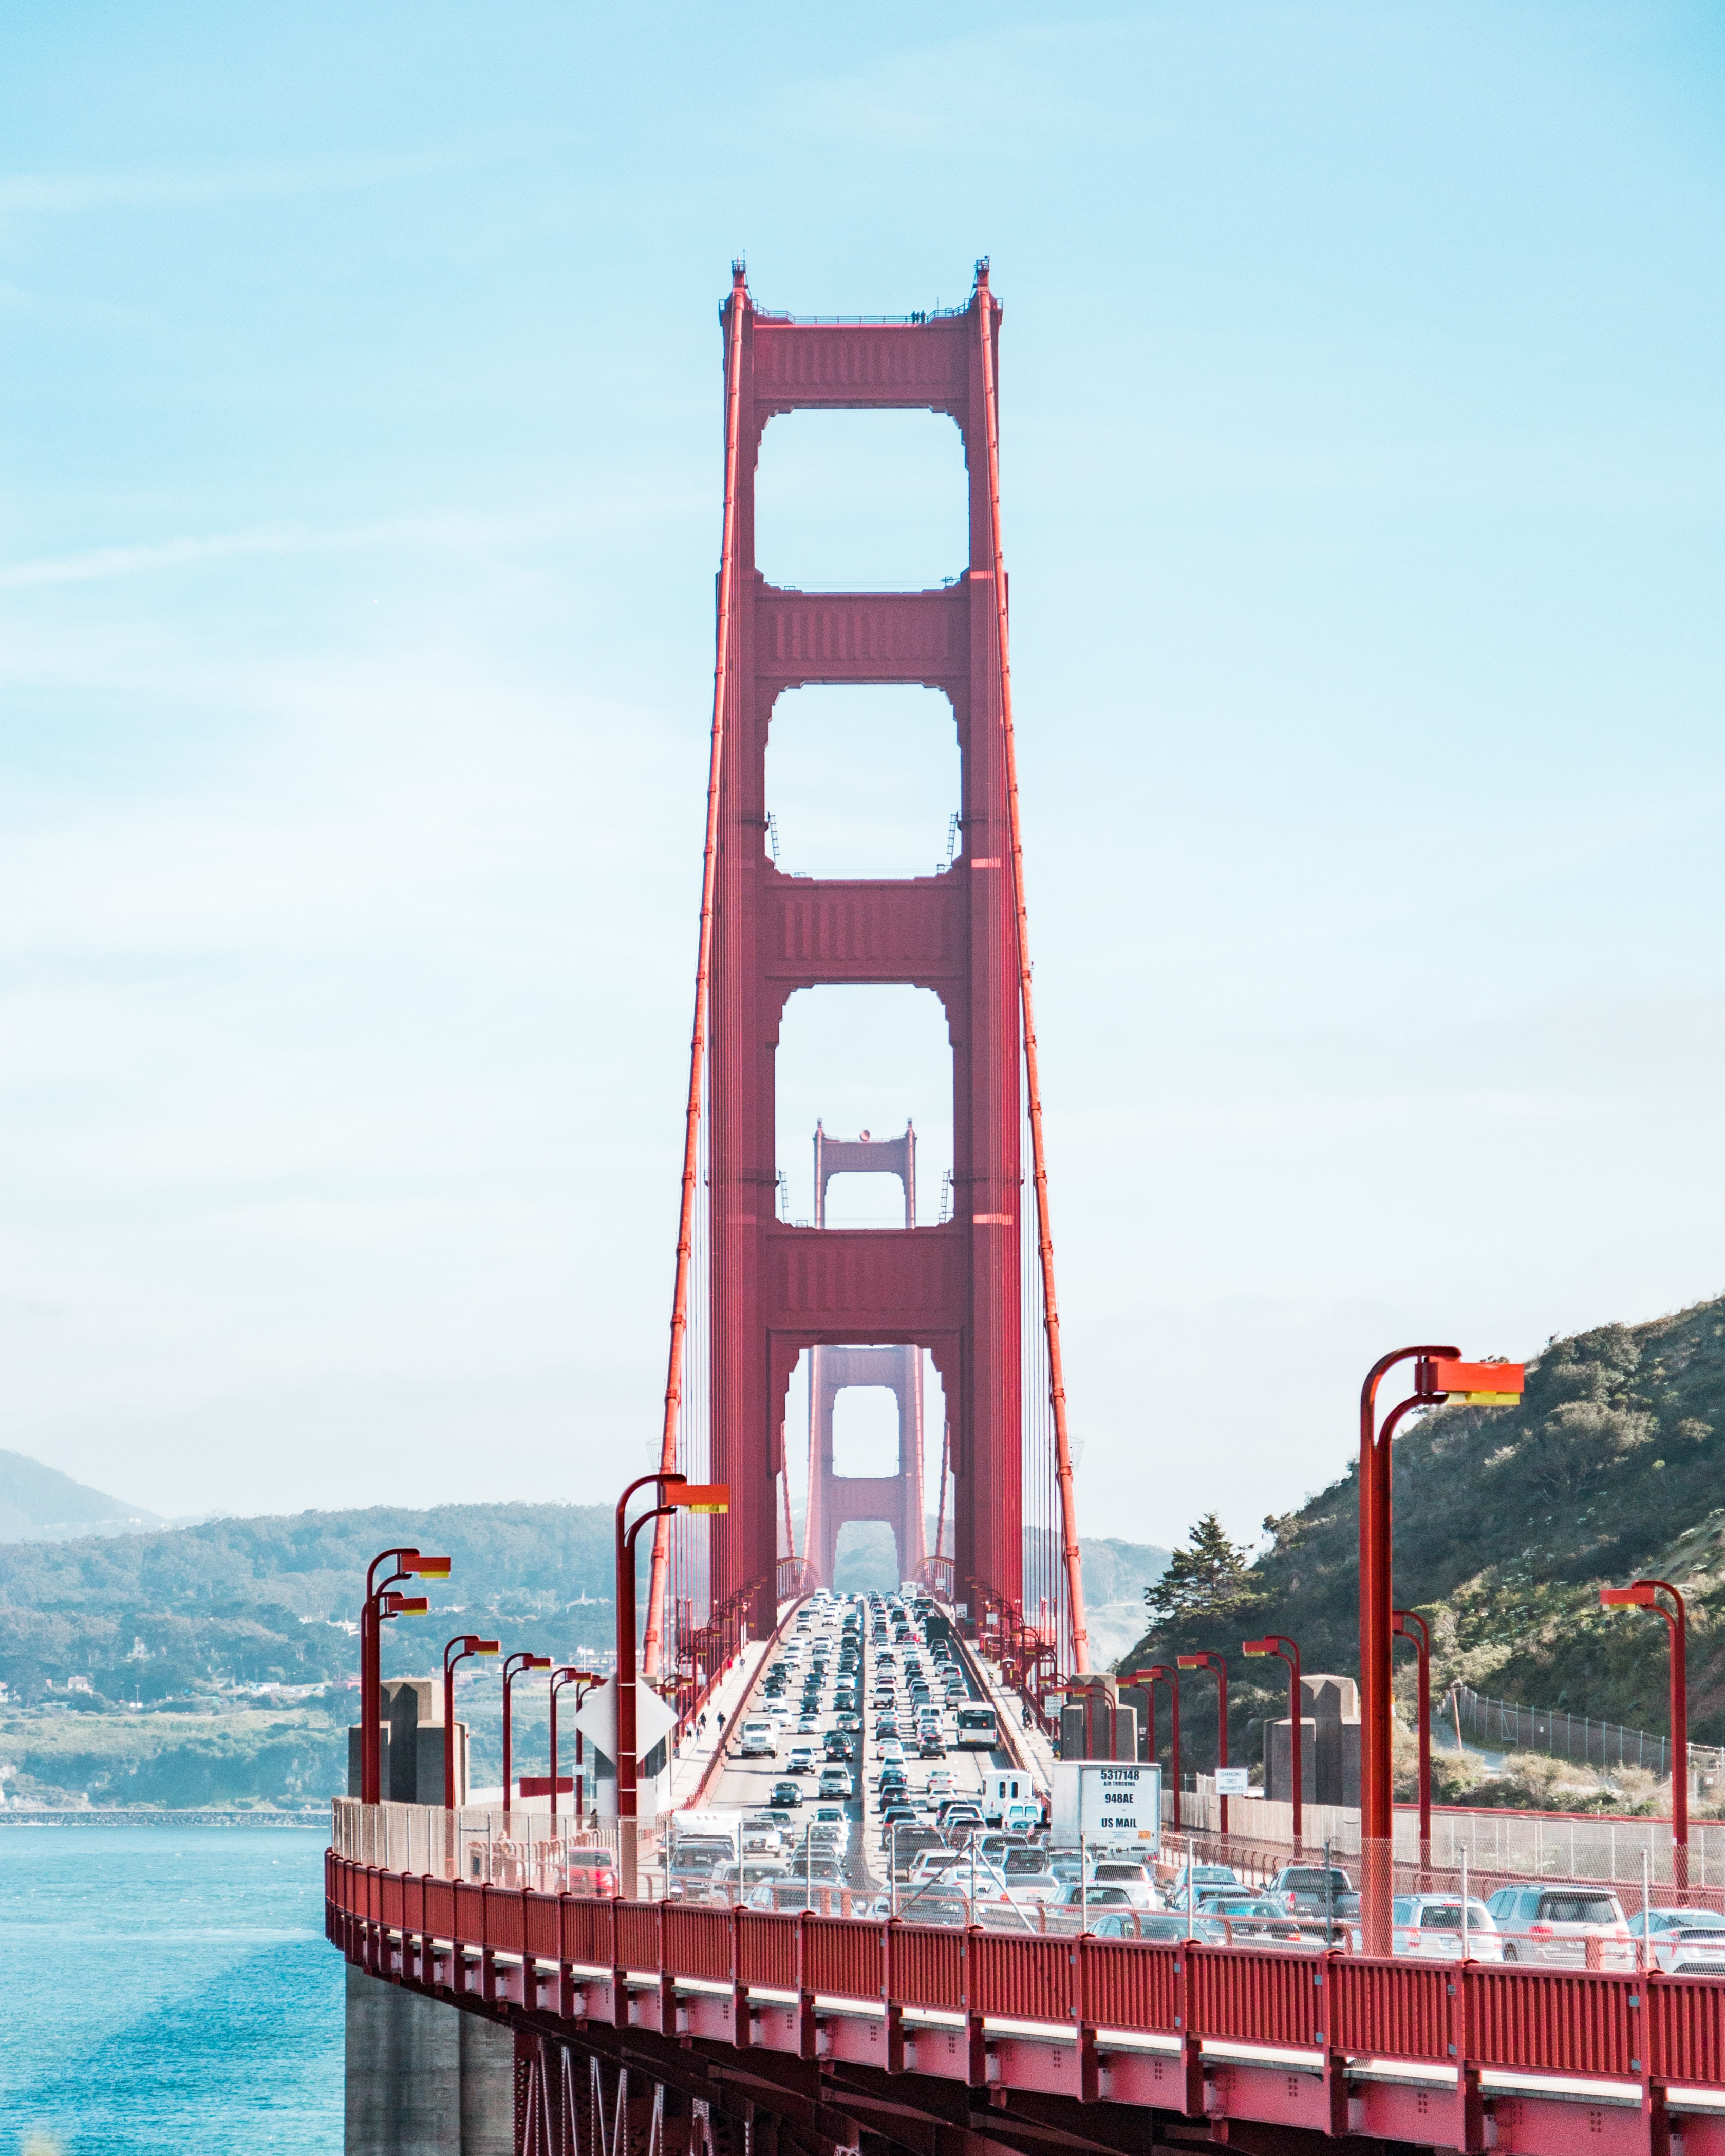 Golden Gate Bridge, San Francisco, U.S.A